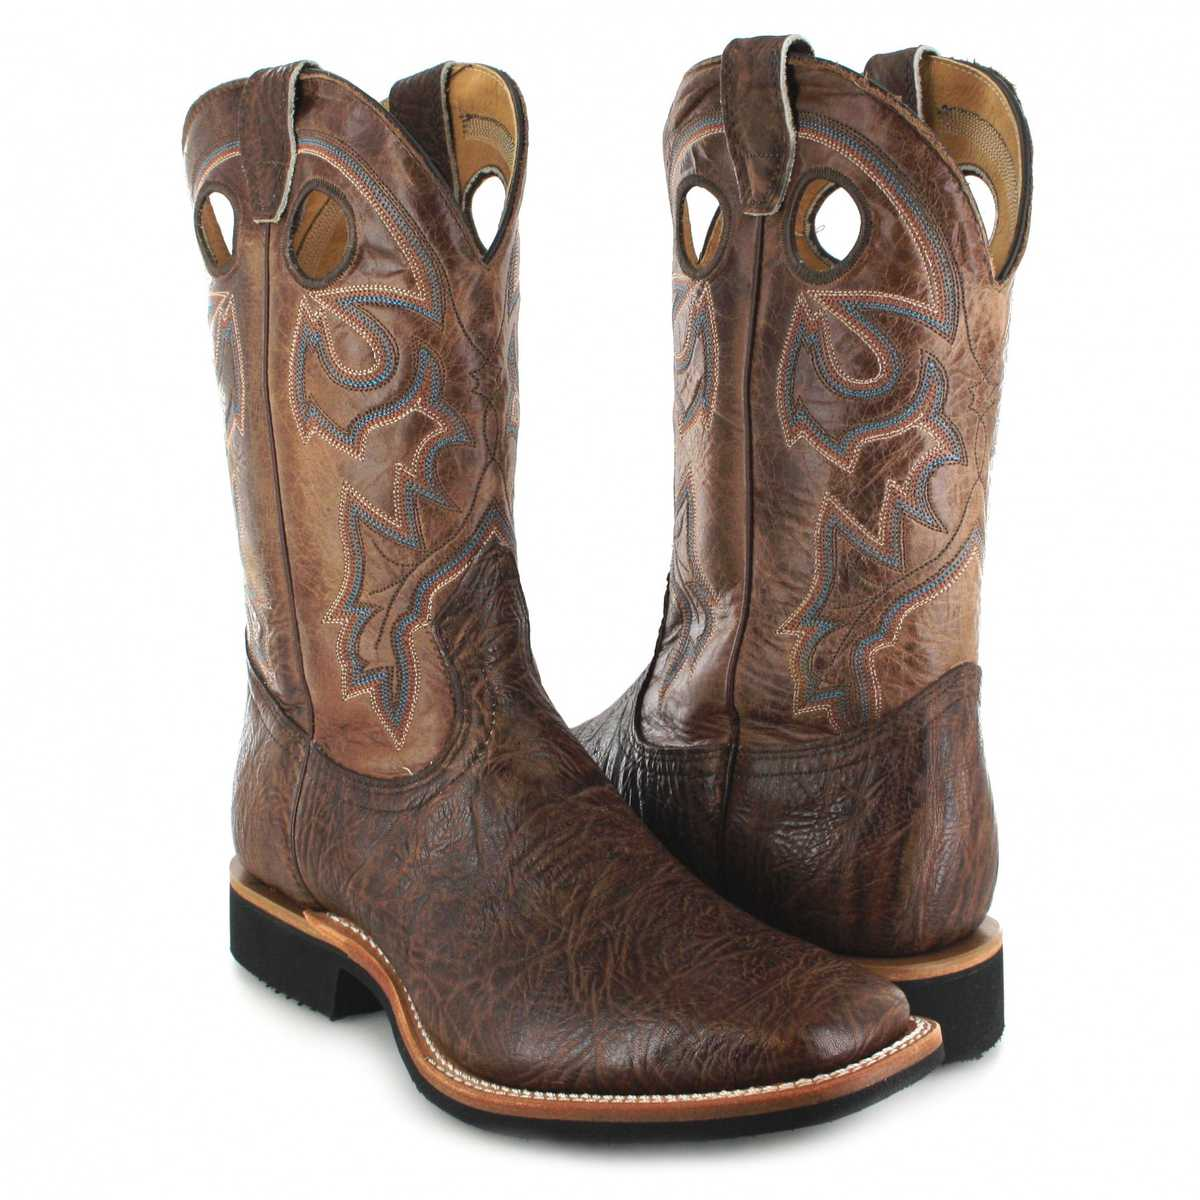 d2ccedb7671 Boulet 5262 E Noce Brown Westernridingboot - brown